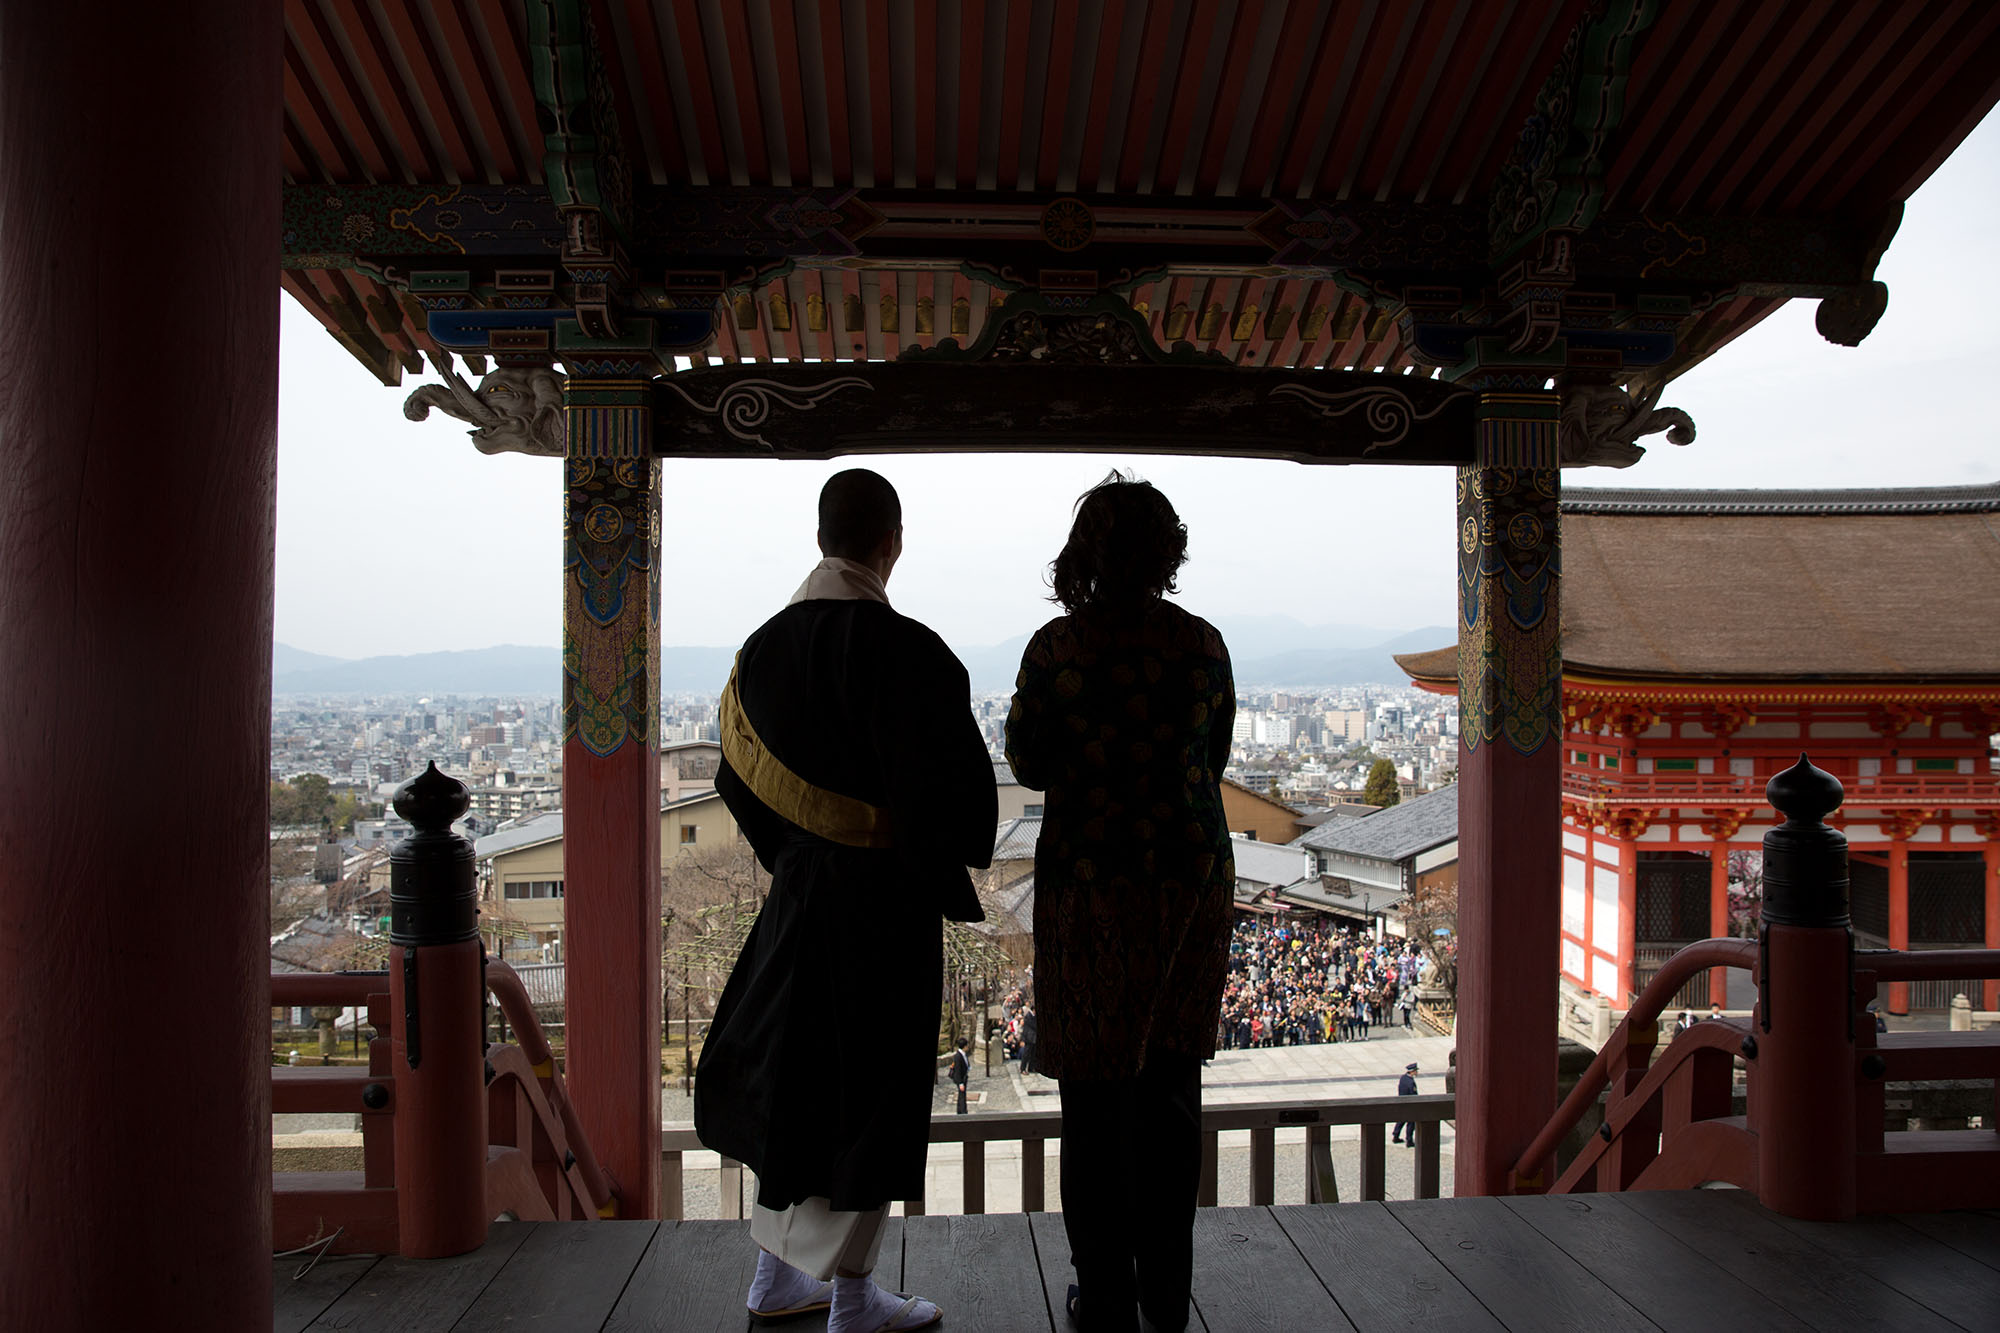 Senior Monk Eigen Onishi guides the First Lady on a tour of the temple. (Official White House Photo by Amanda Lucidon)